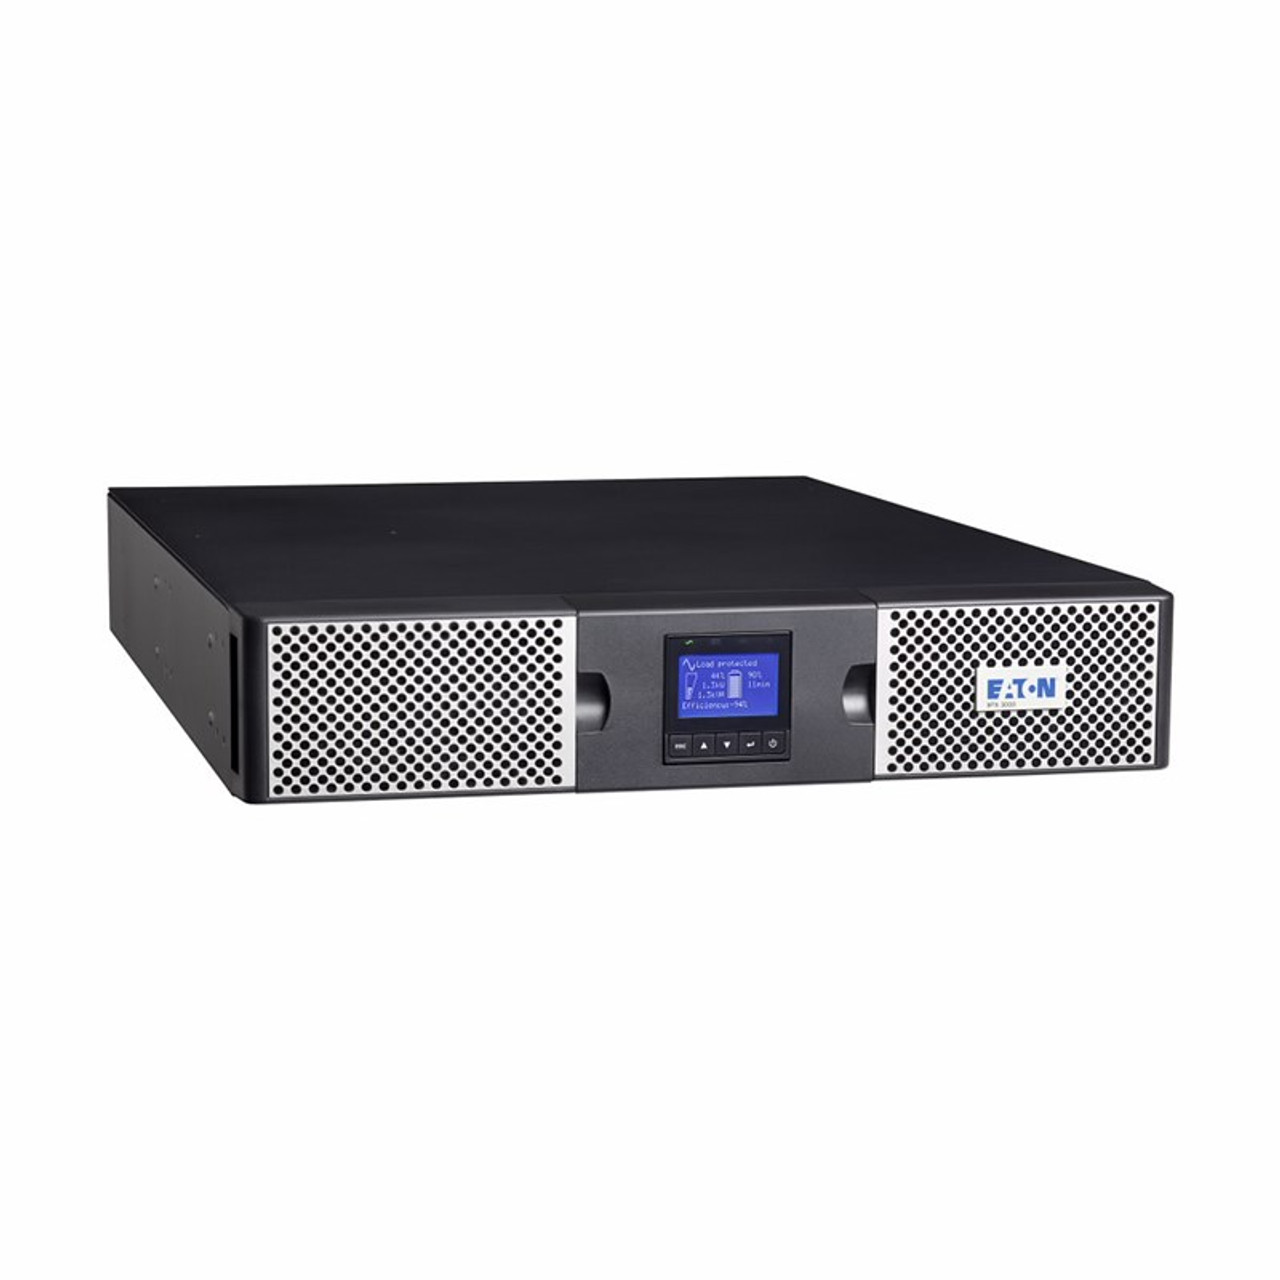 Image for Eaton 9PX 2200W RT2U Rack/Tower Mountable UPS CX Computer Superstore